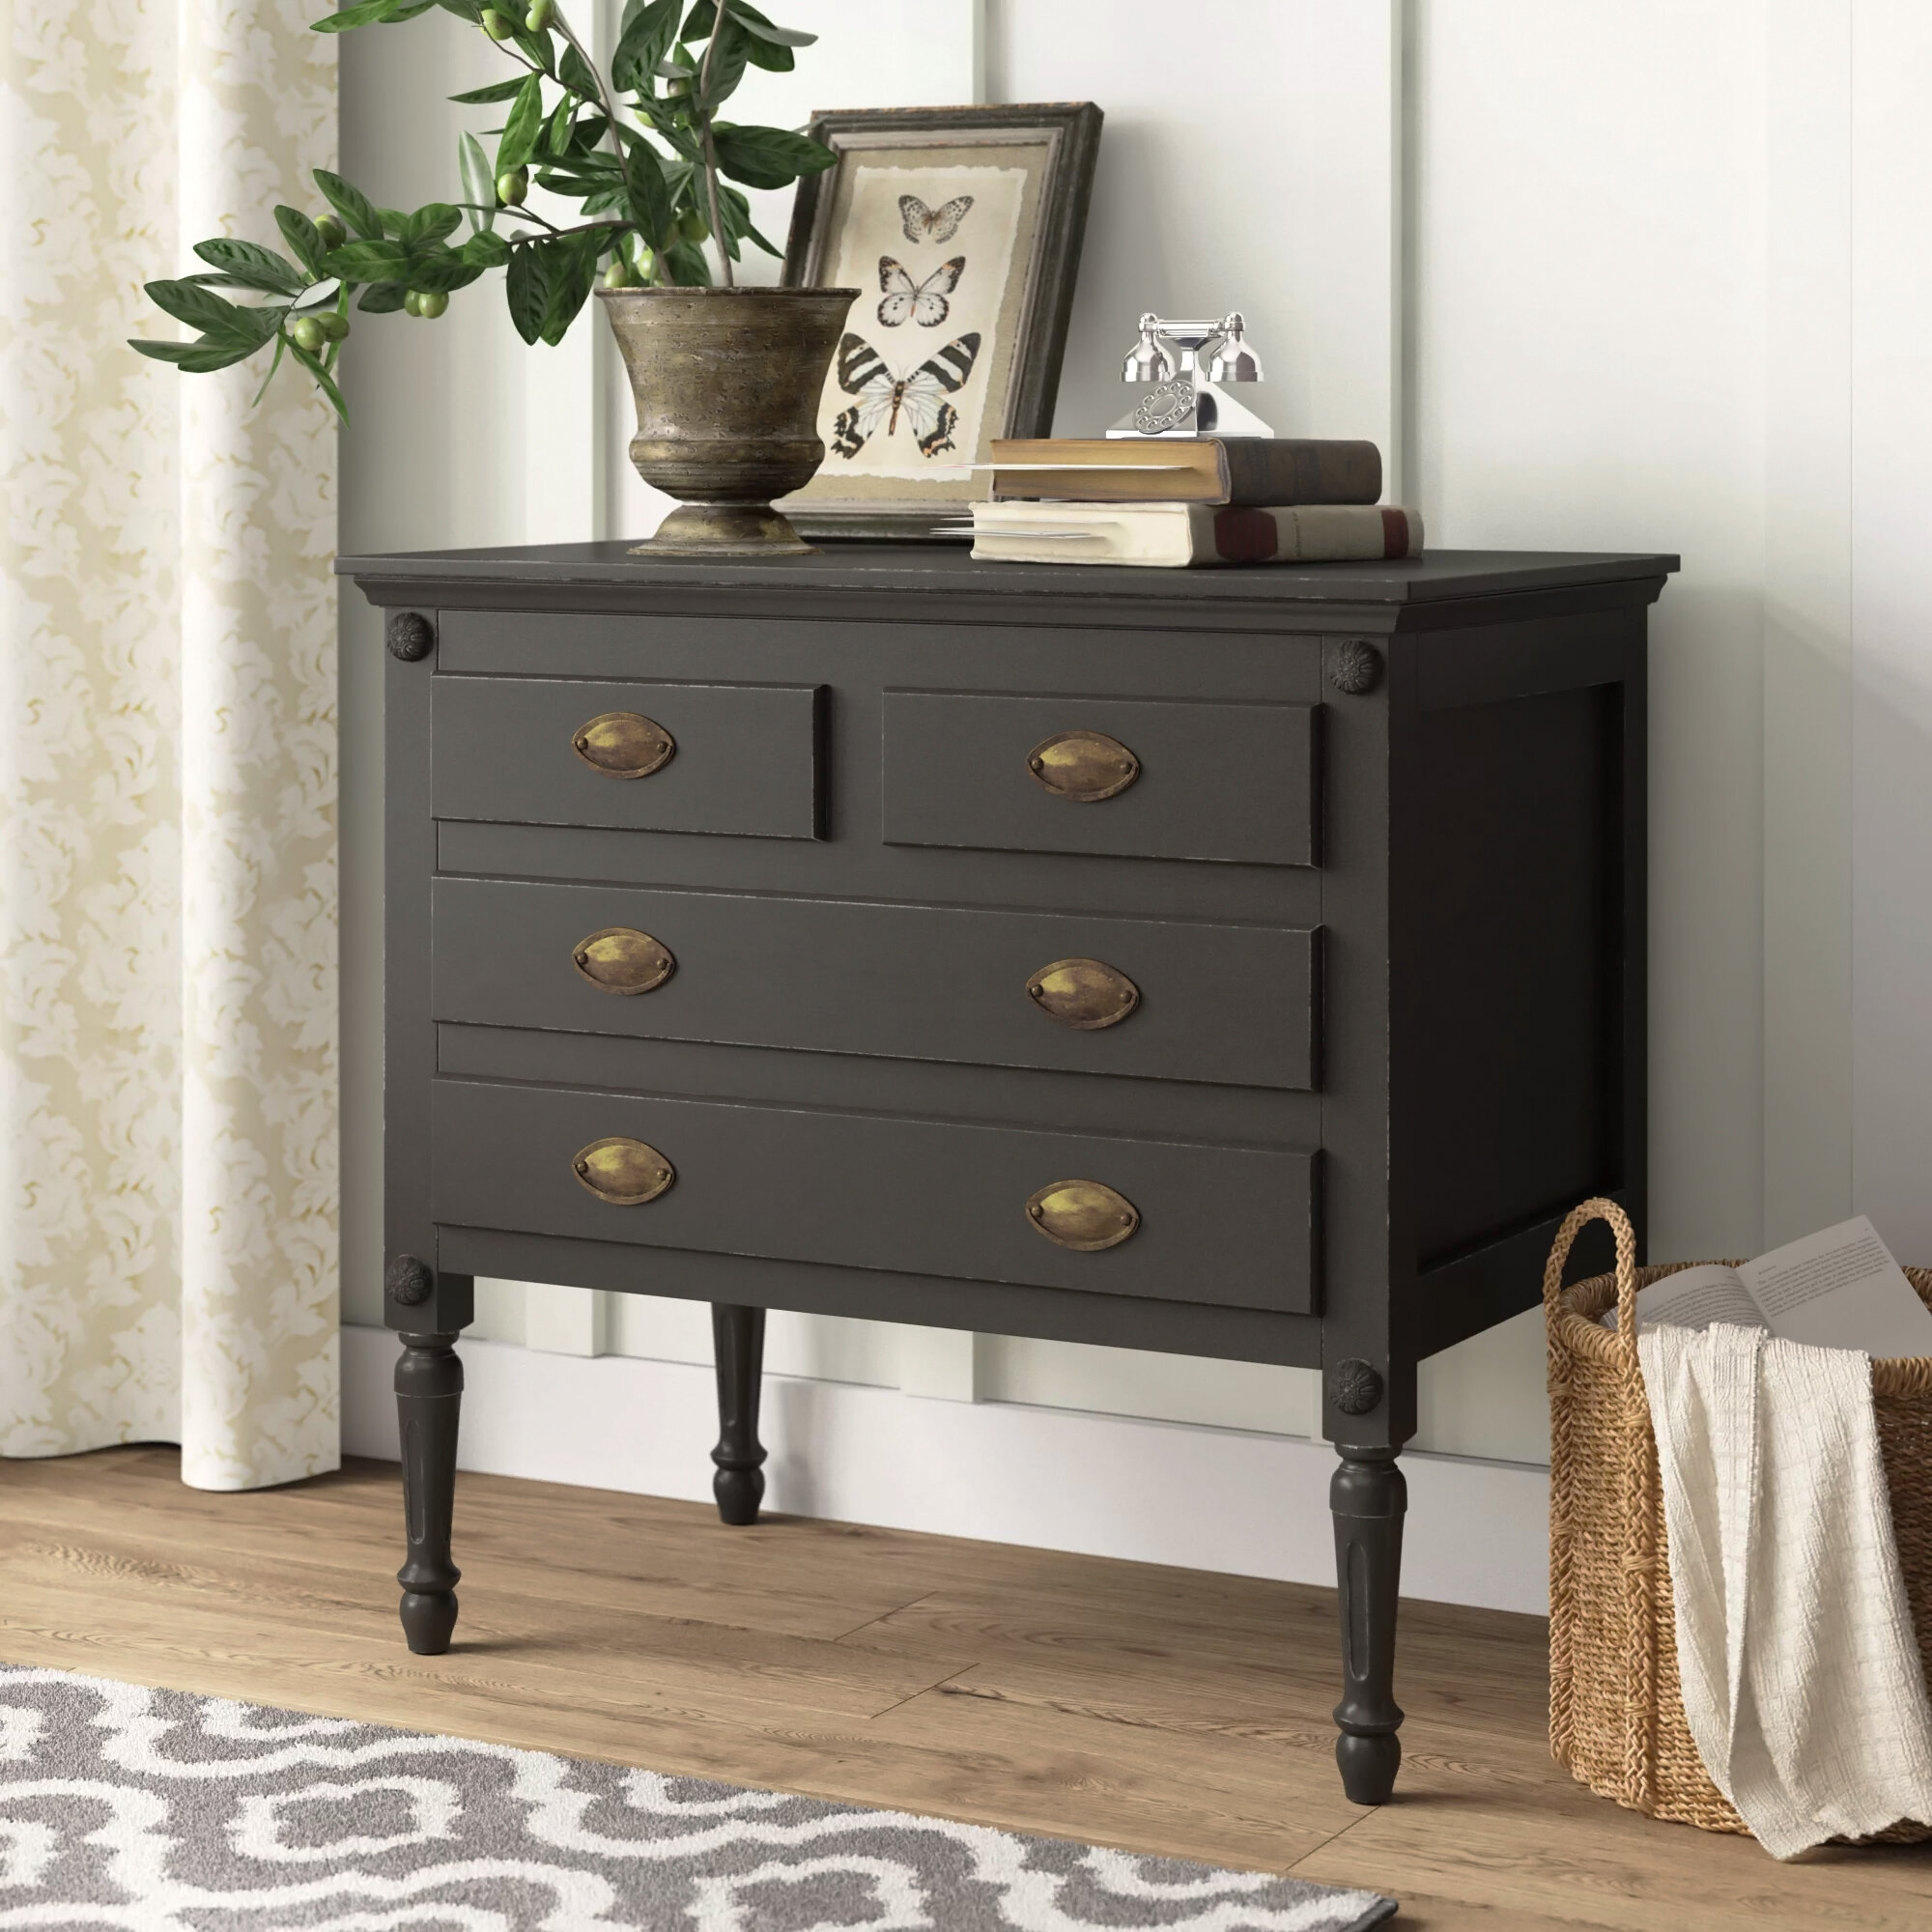 Birch Lane Easterbrook 4 Drawer Accent Chest Reviews Wayfair